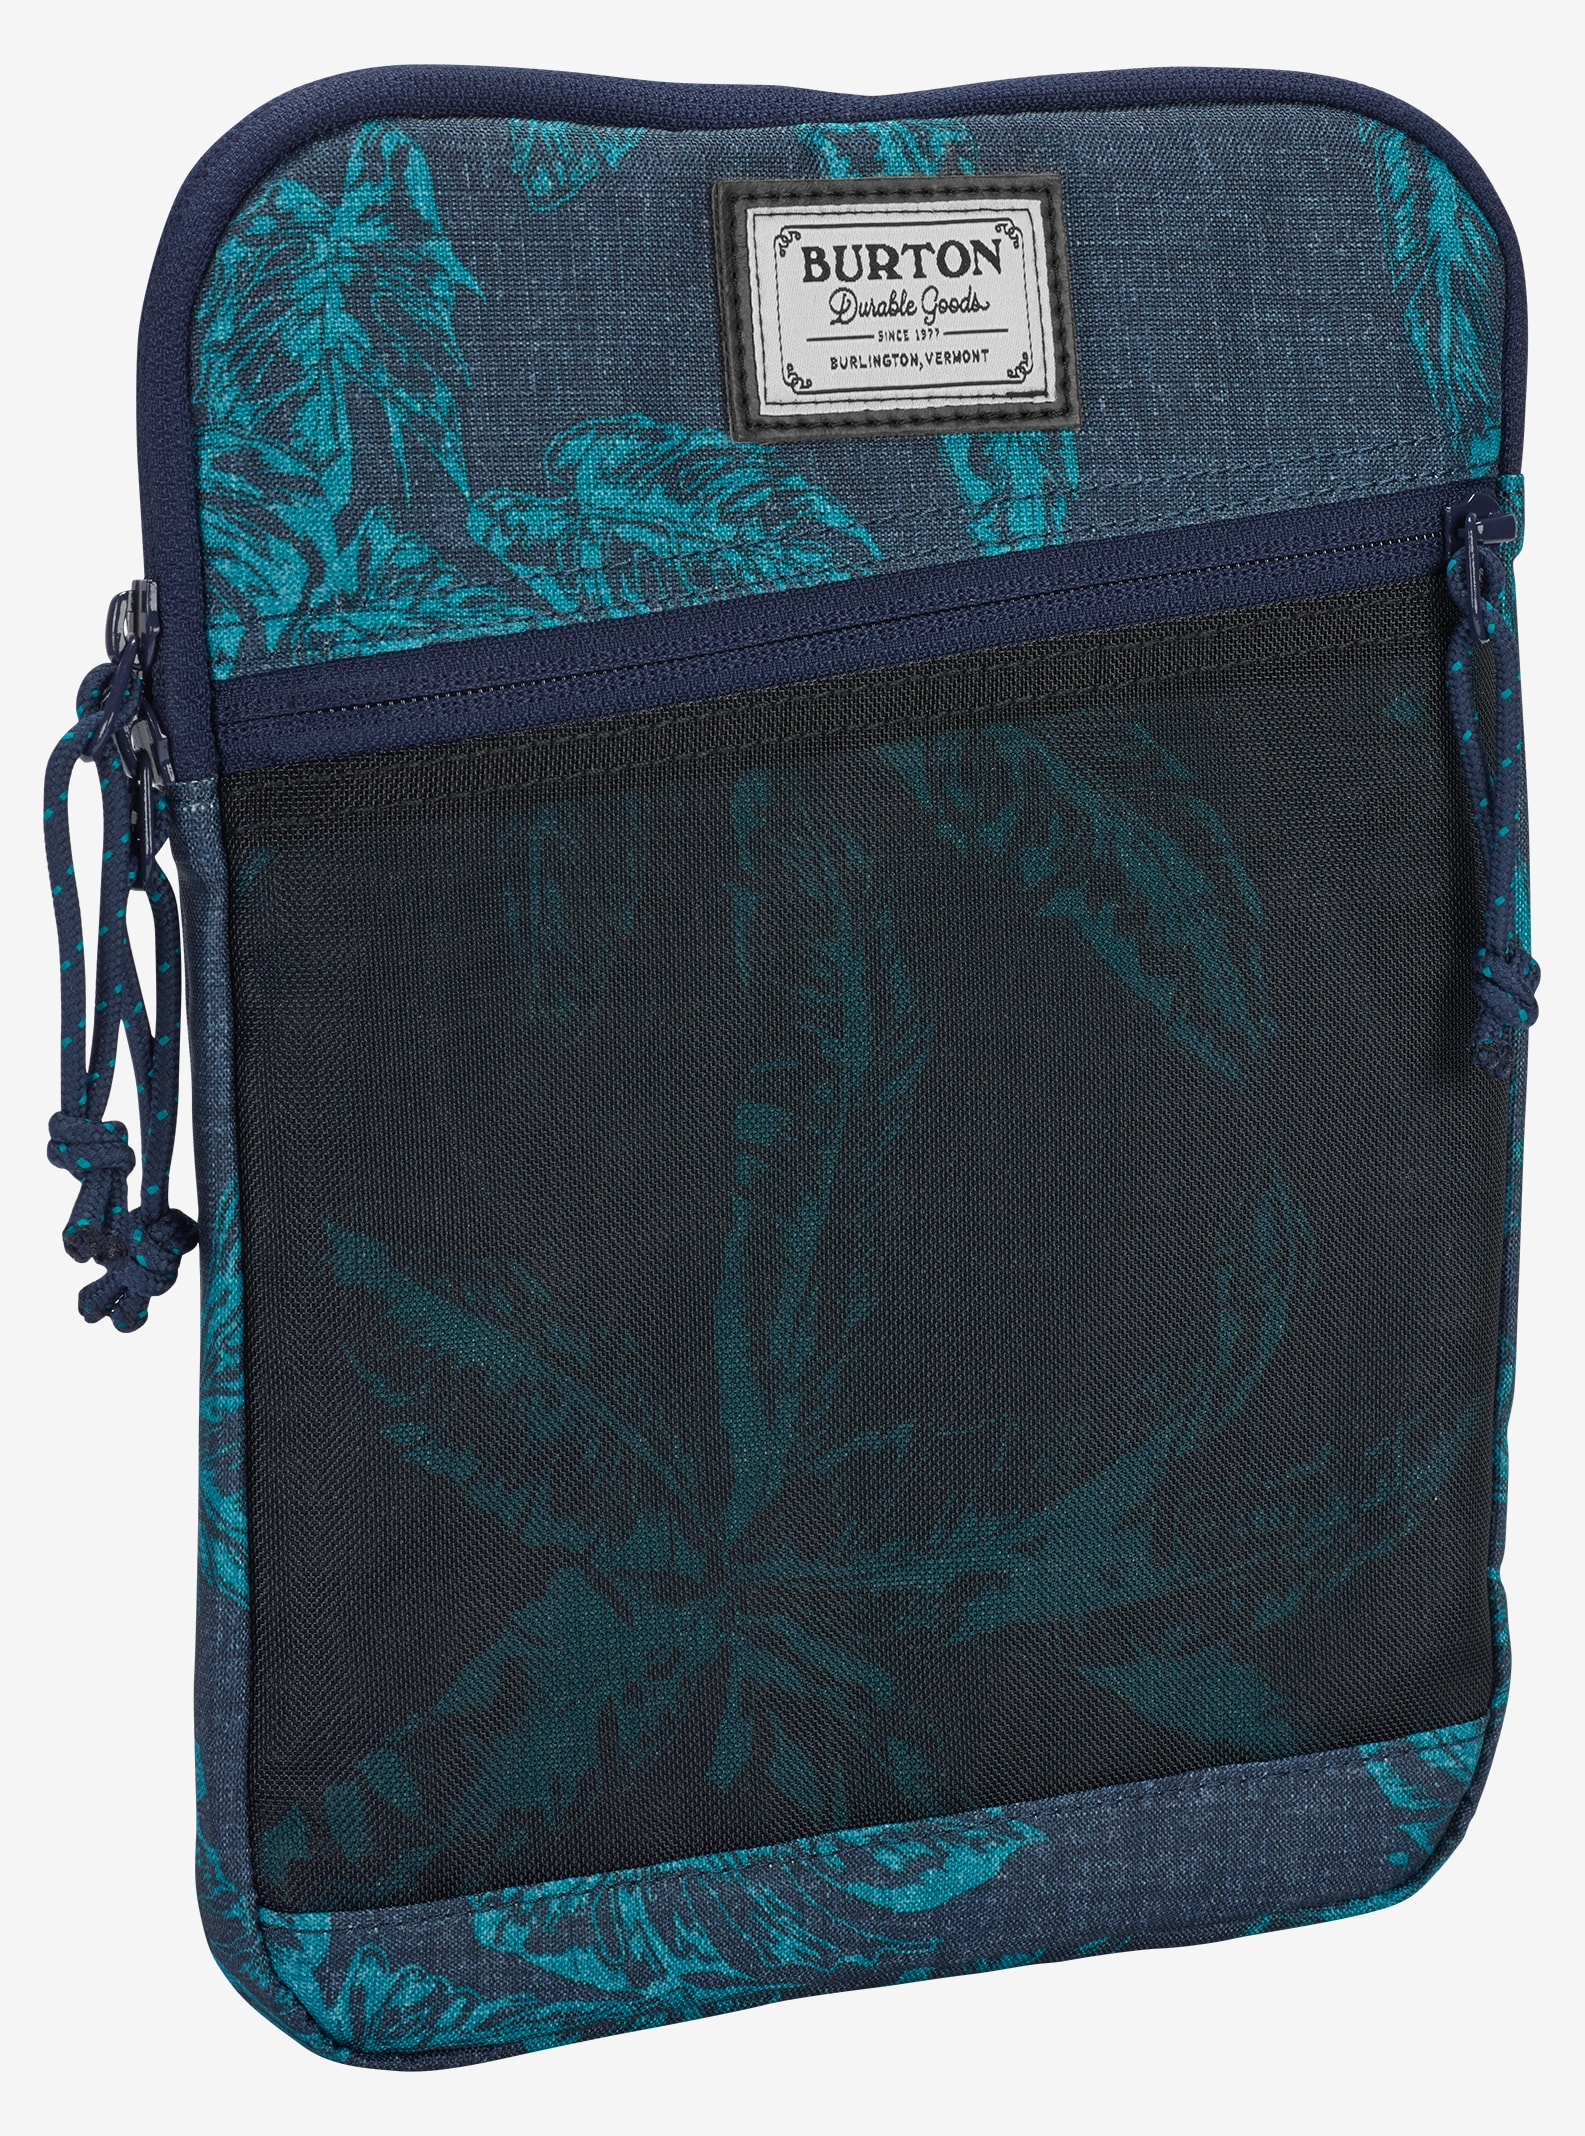 Burton Hyperlink 10in Tablet Sleeve shown in Tropical Print